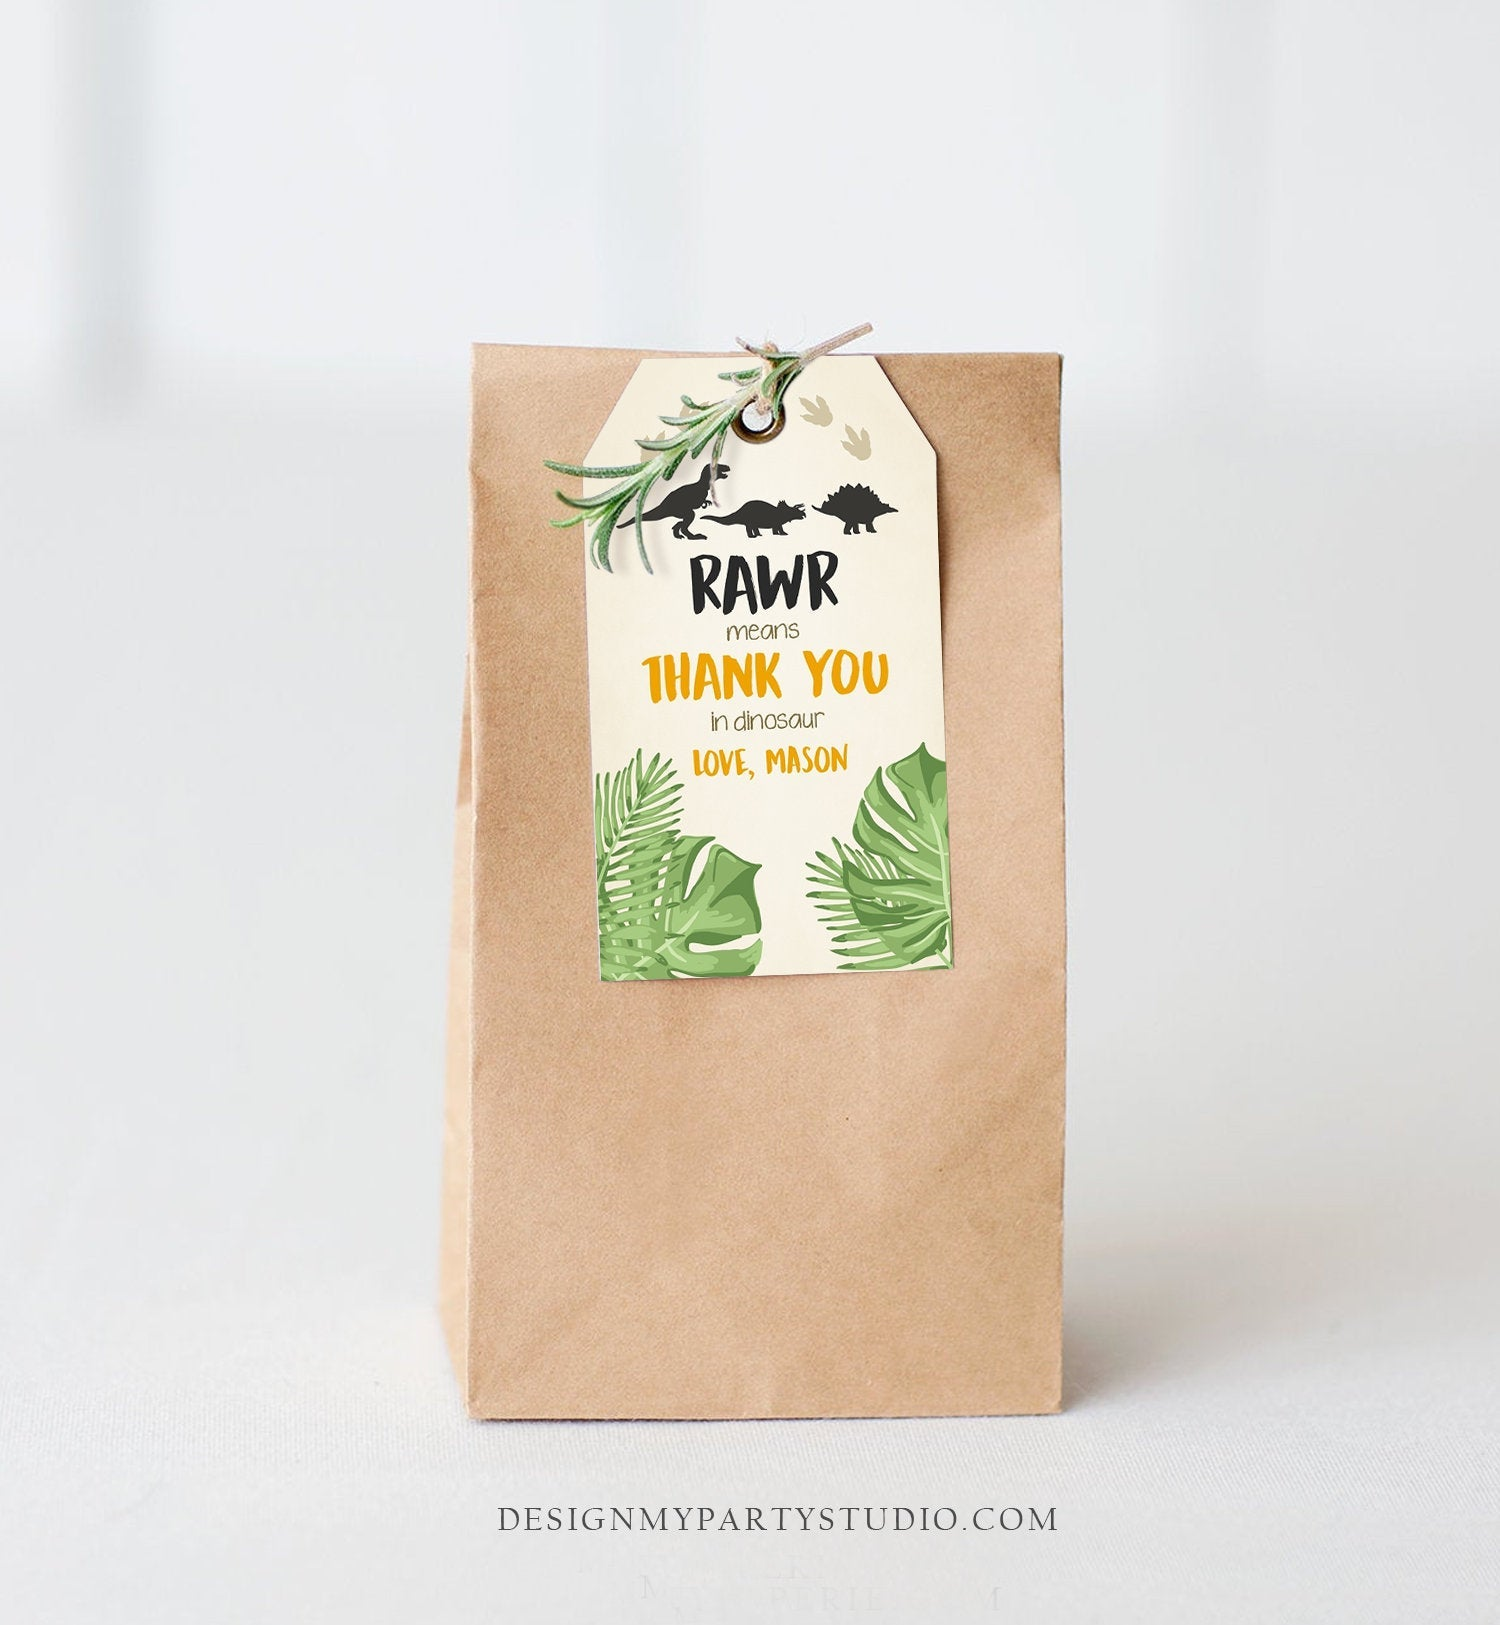 Editable Dinosaur Favor Tags RAWR Thank You For Stomping By Dino Boy Birthday Party Instant Digital Download Template Corjl Printable 0043